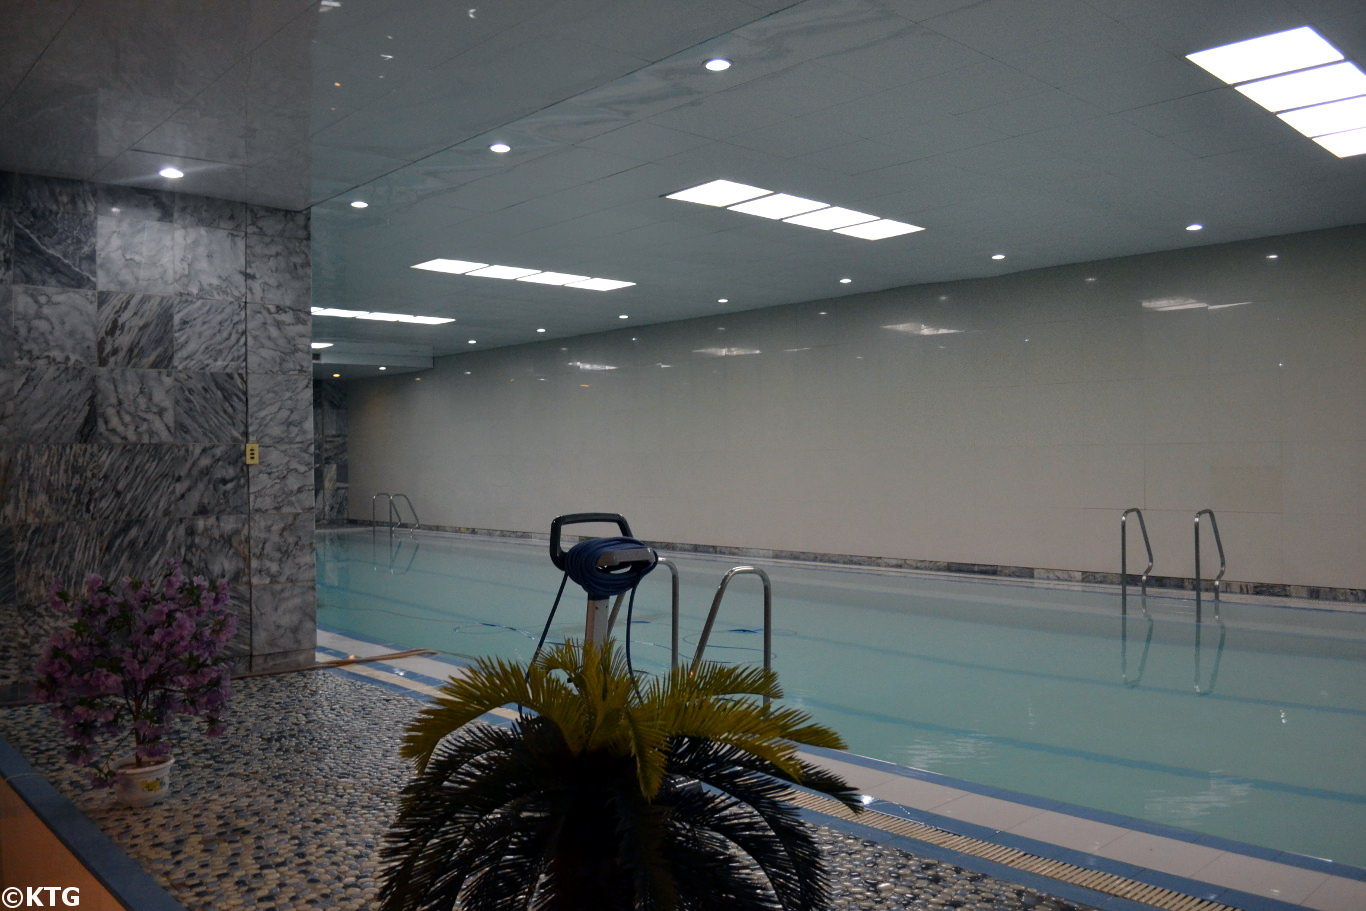 Swimming pool at the Yanggakdo Hotel, Pyongyang, North Korea